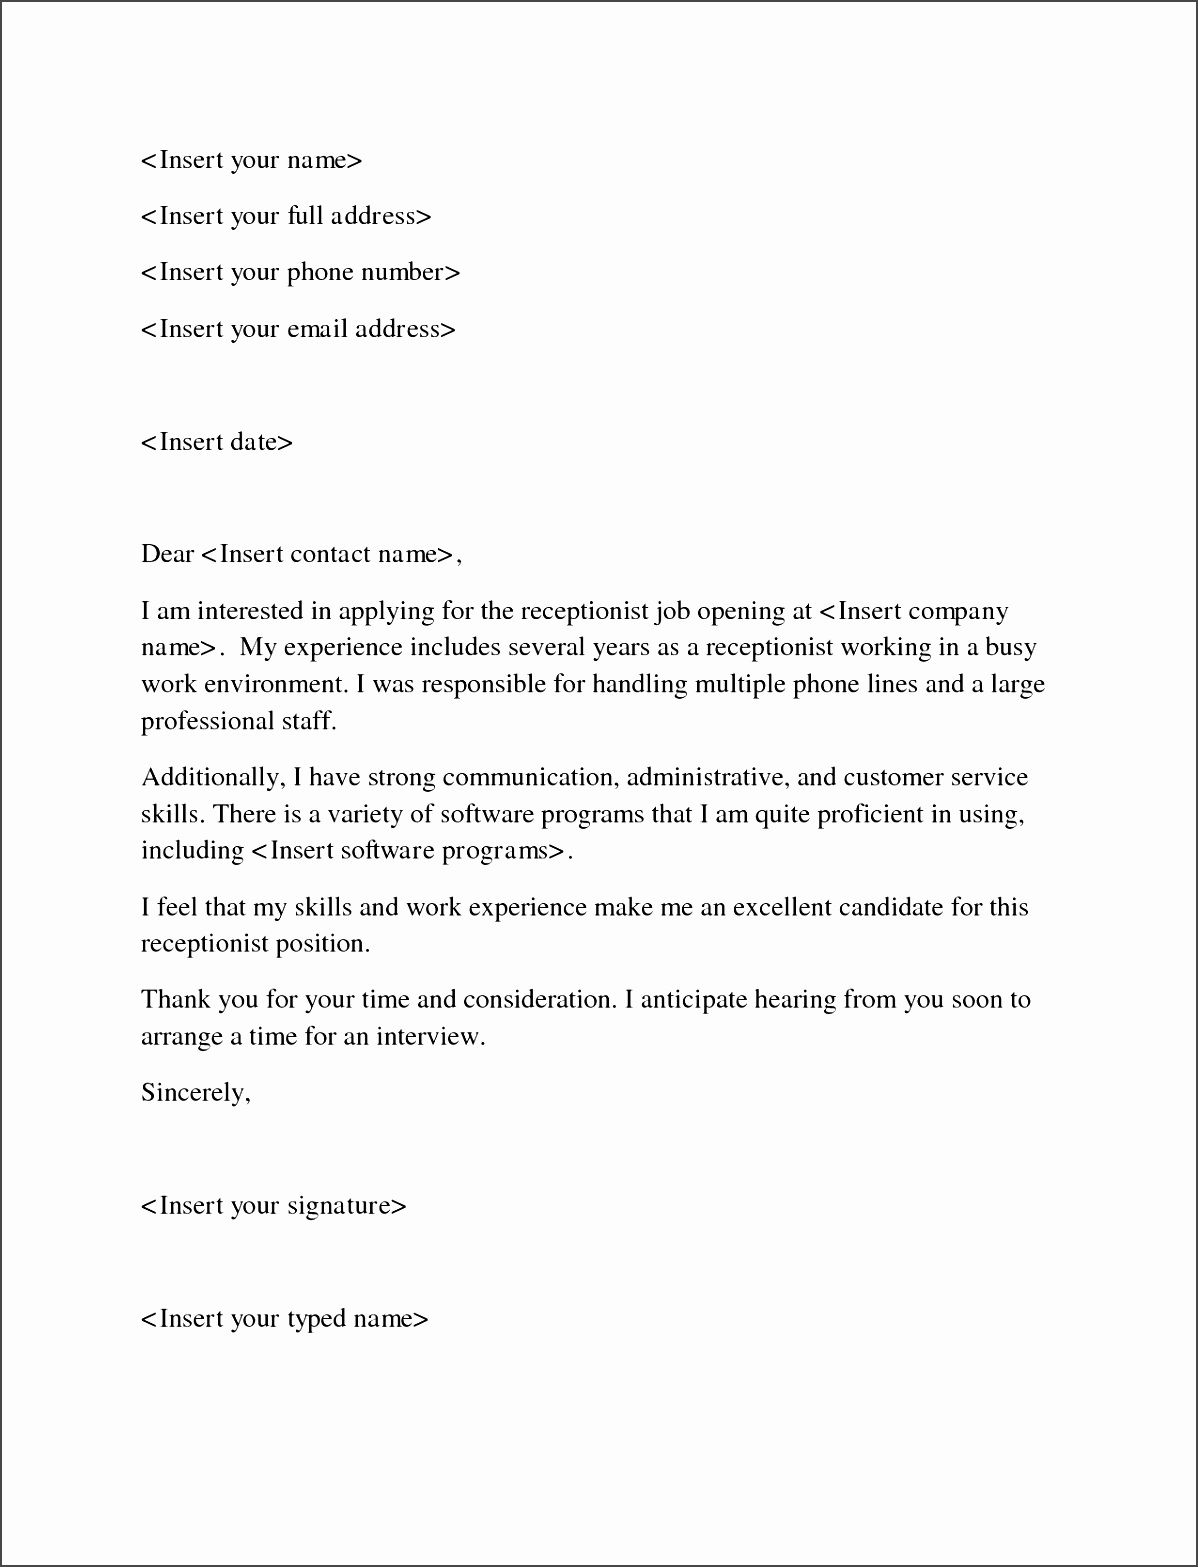 how to write a job application letter with resume